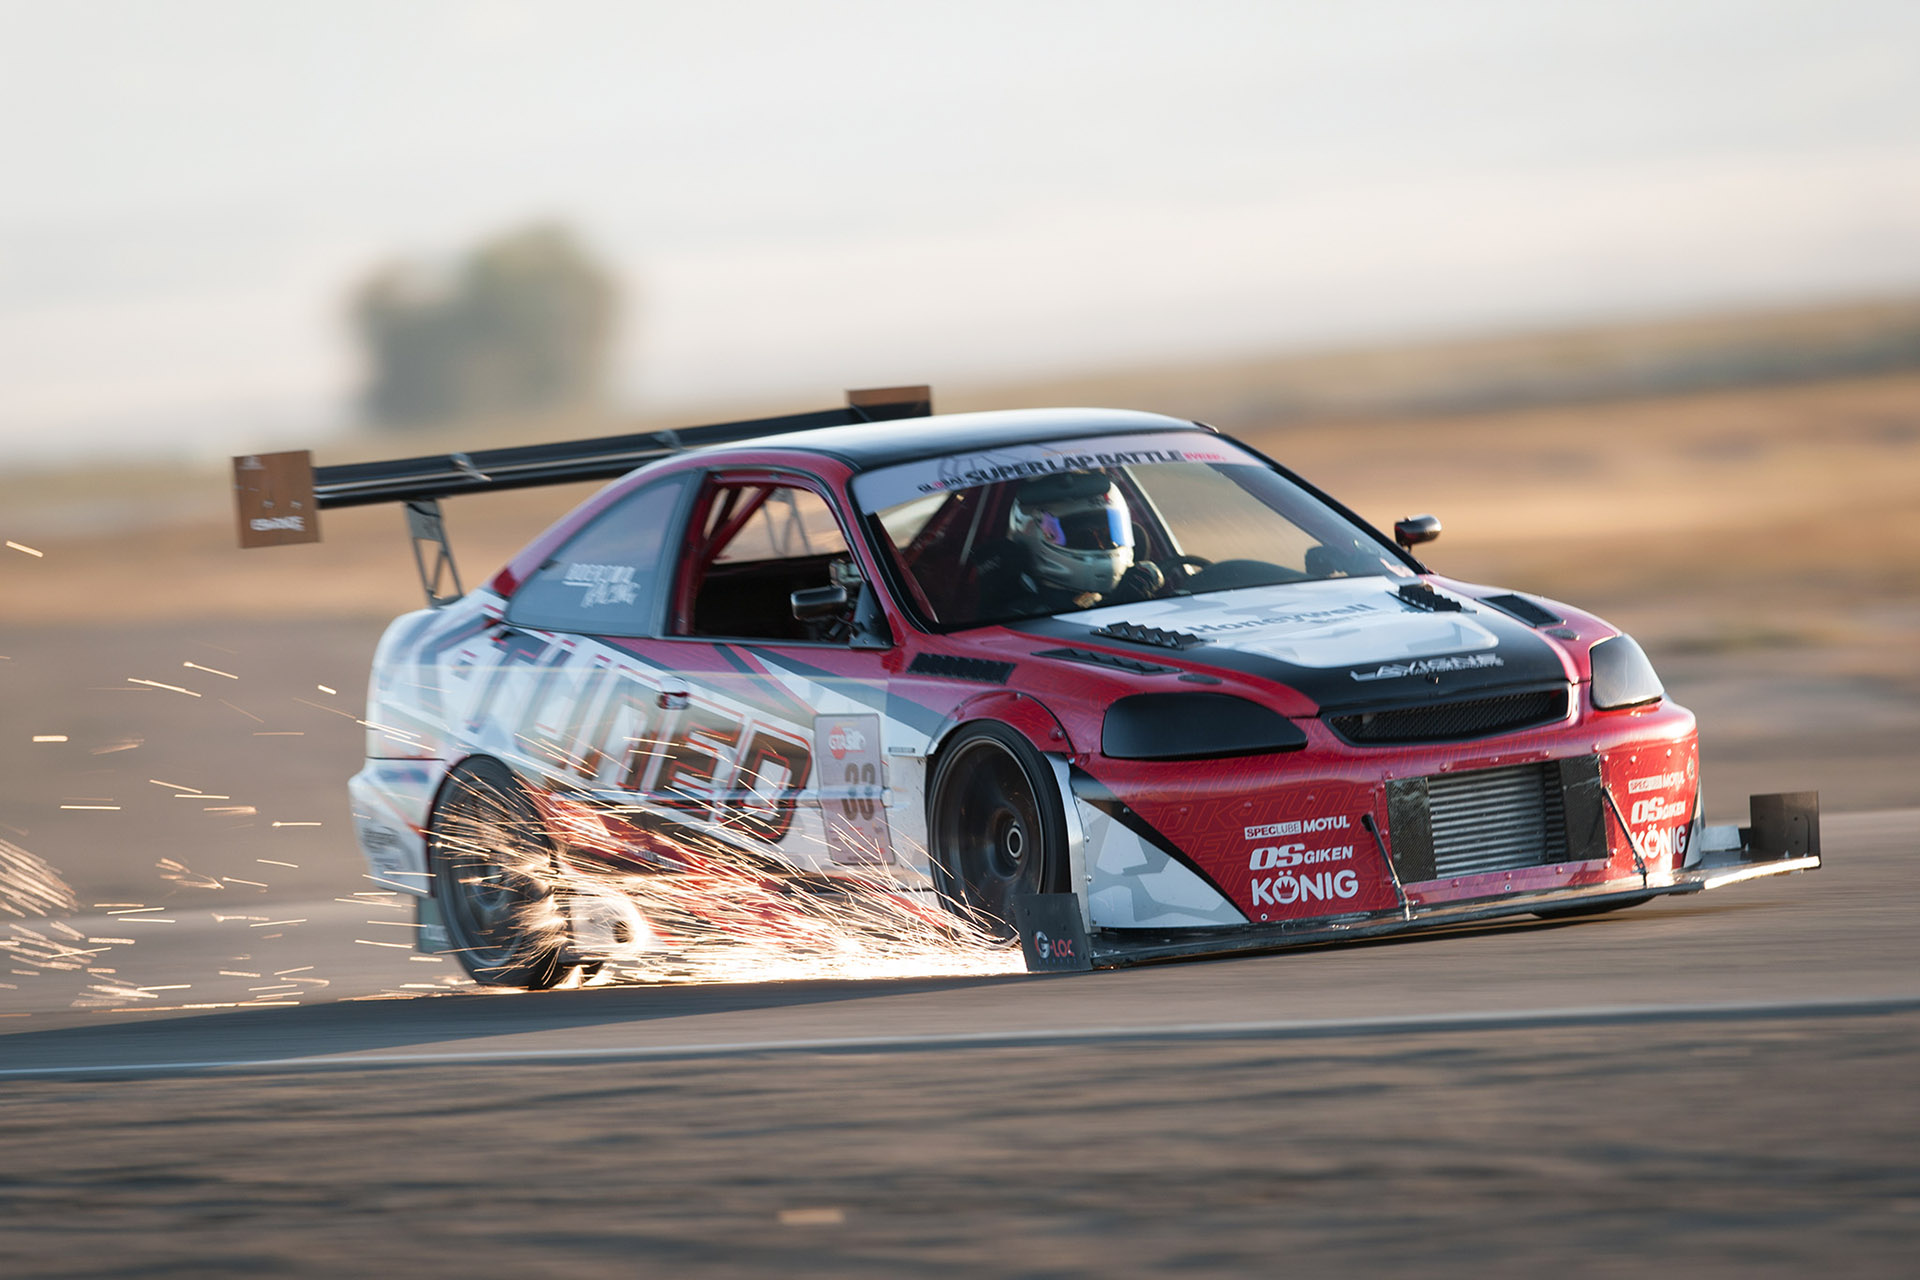 luke Munnell motorsports photography Global Time Attack Super Lap Battle Chris Boersma Honda Civic sparks motion racing